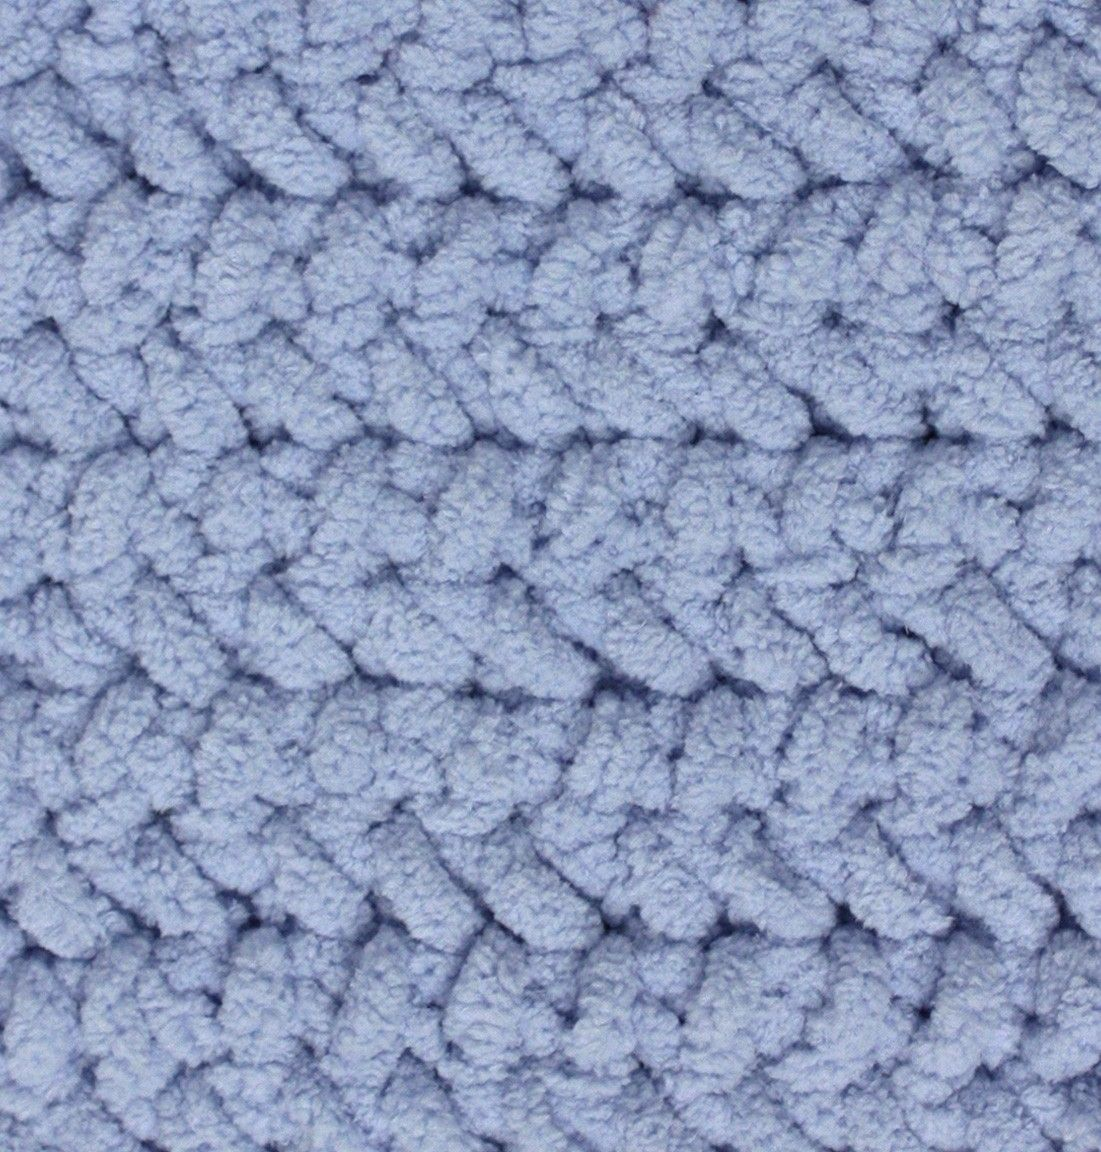 My newest quick and easy crochet pattern using bernat baby blanket yarnspirations bernat baby blanket 300g yarn yarnspirations 999 bankloansurffo Gallery